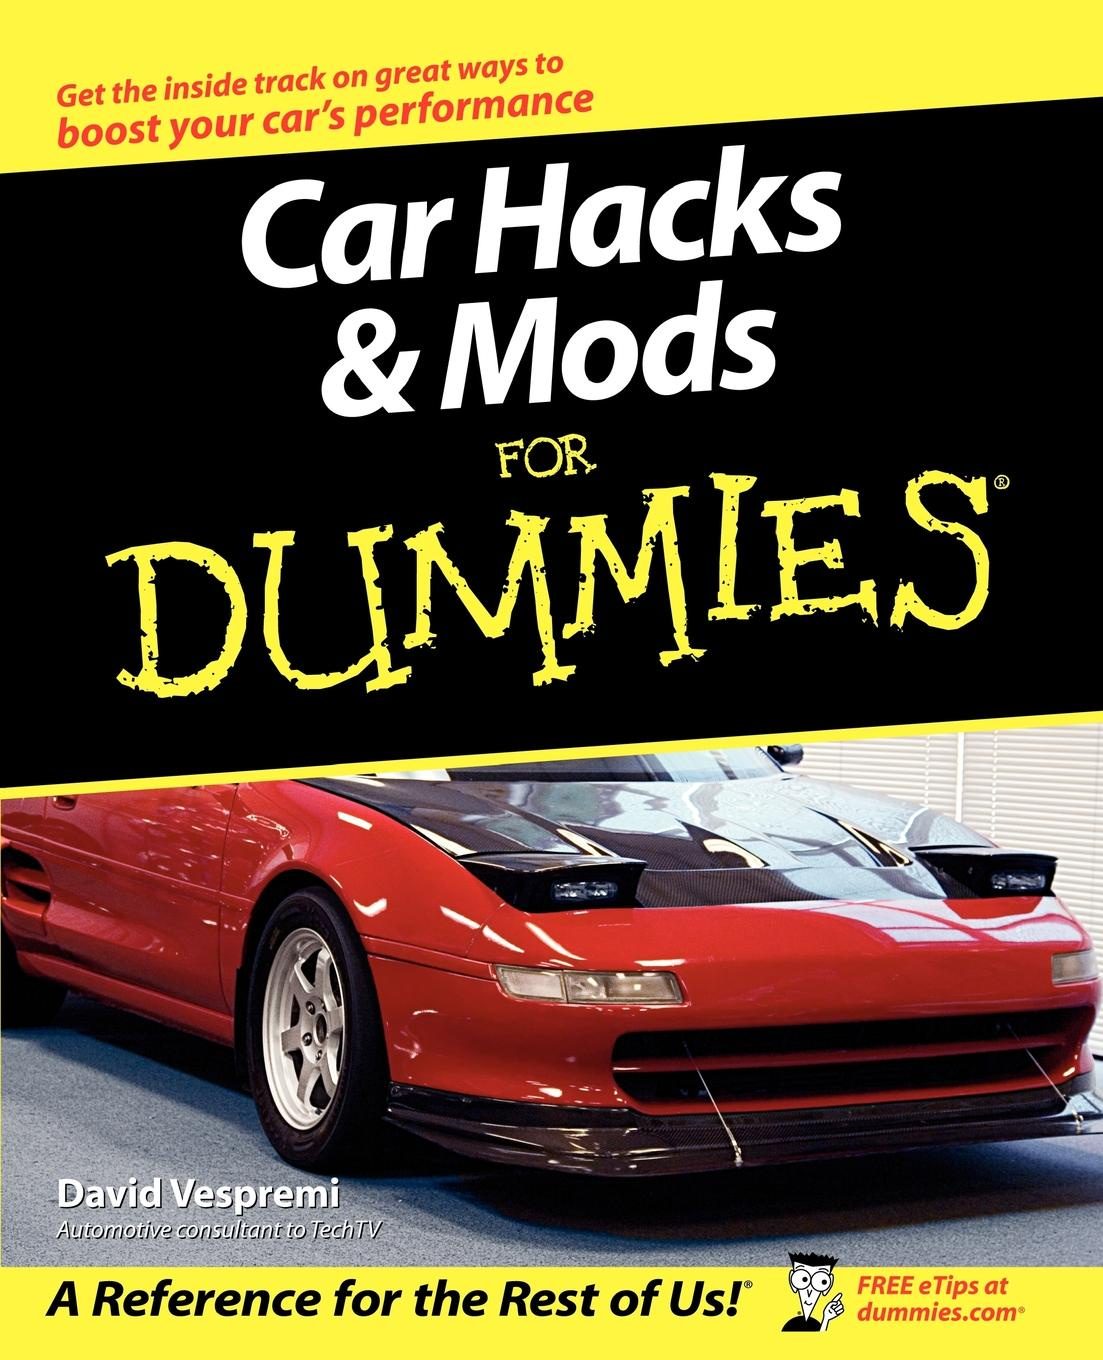 Vespremi Car Hacks Mods For Dummies